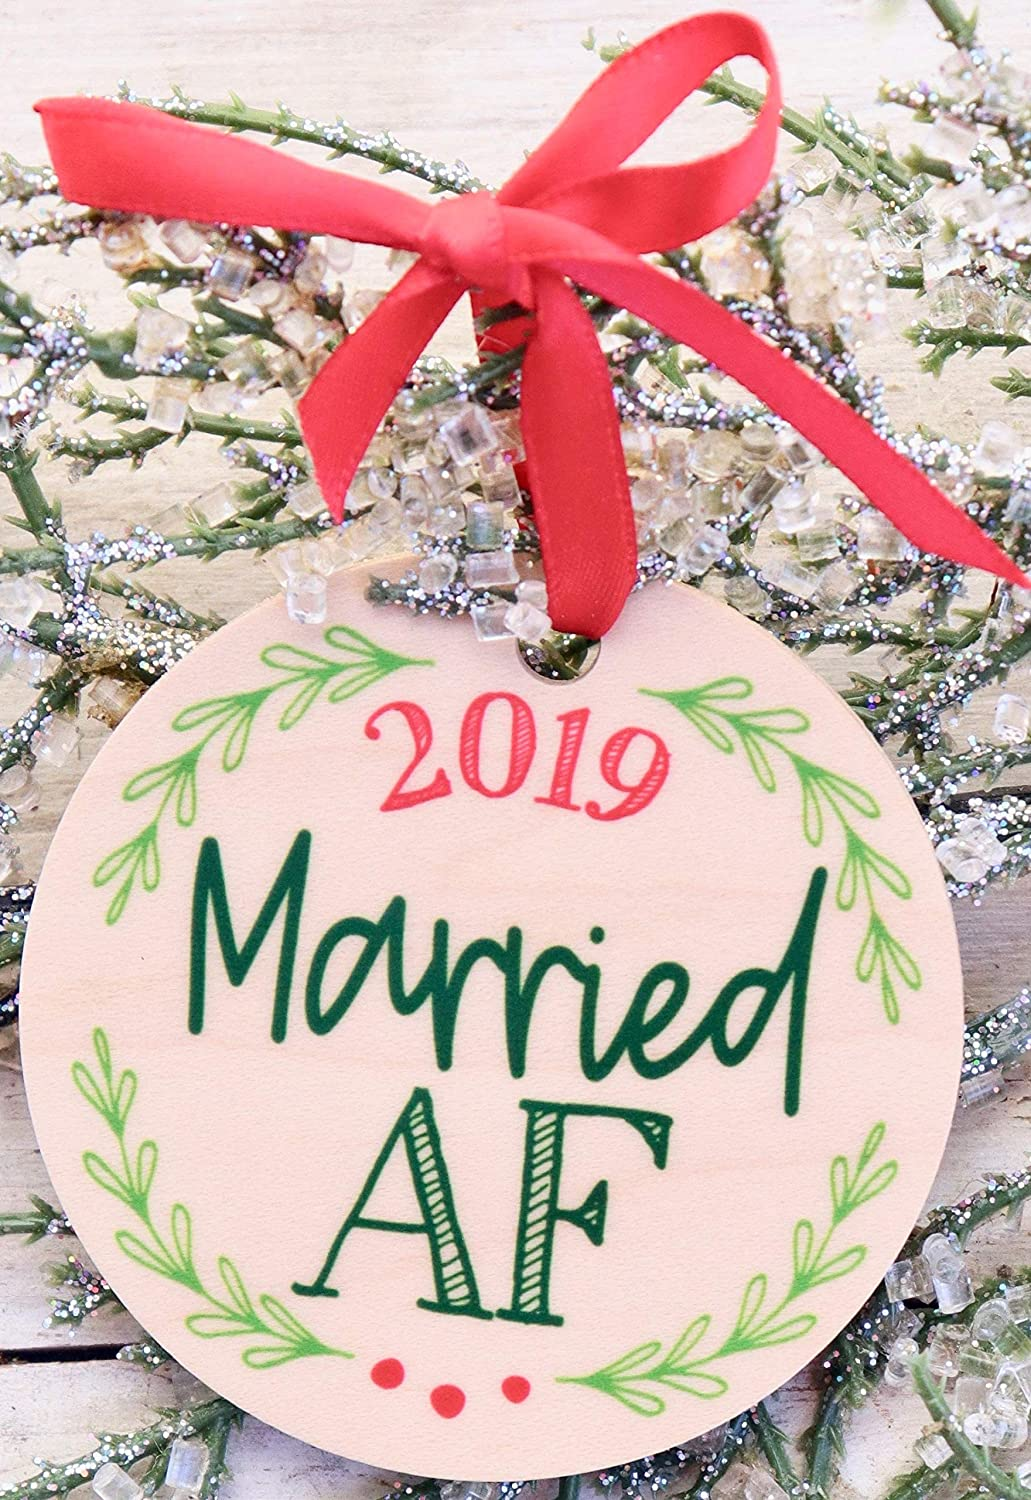 Married AF Christmas Ornament 2019 Funny Gift For Newlywed Couples